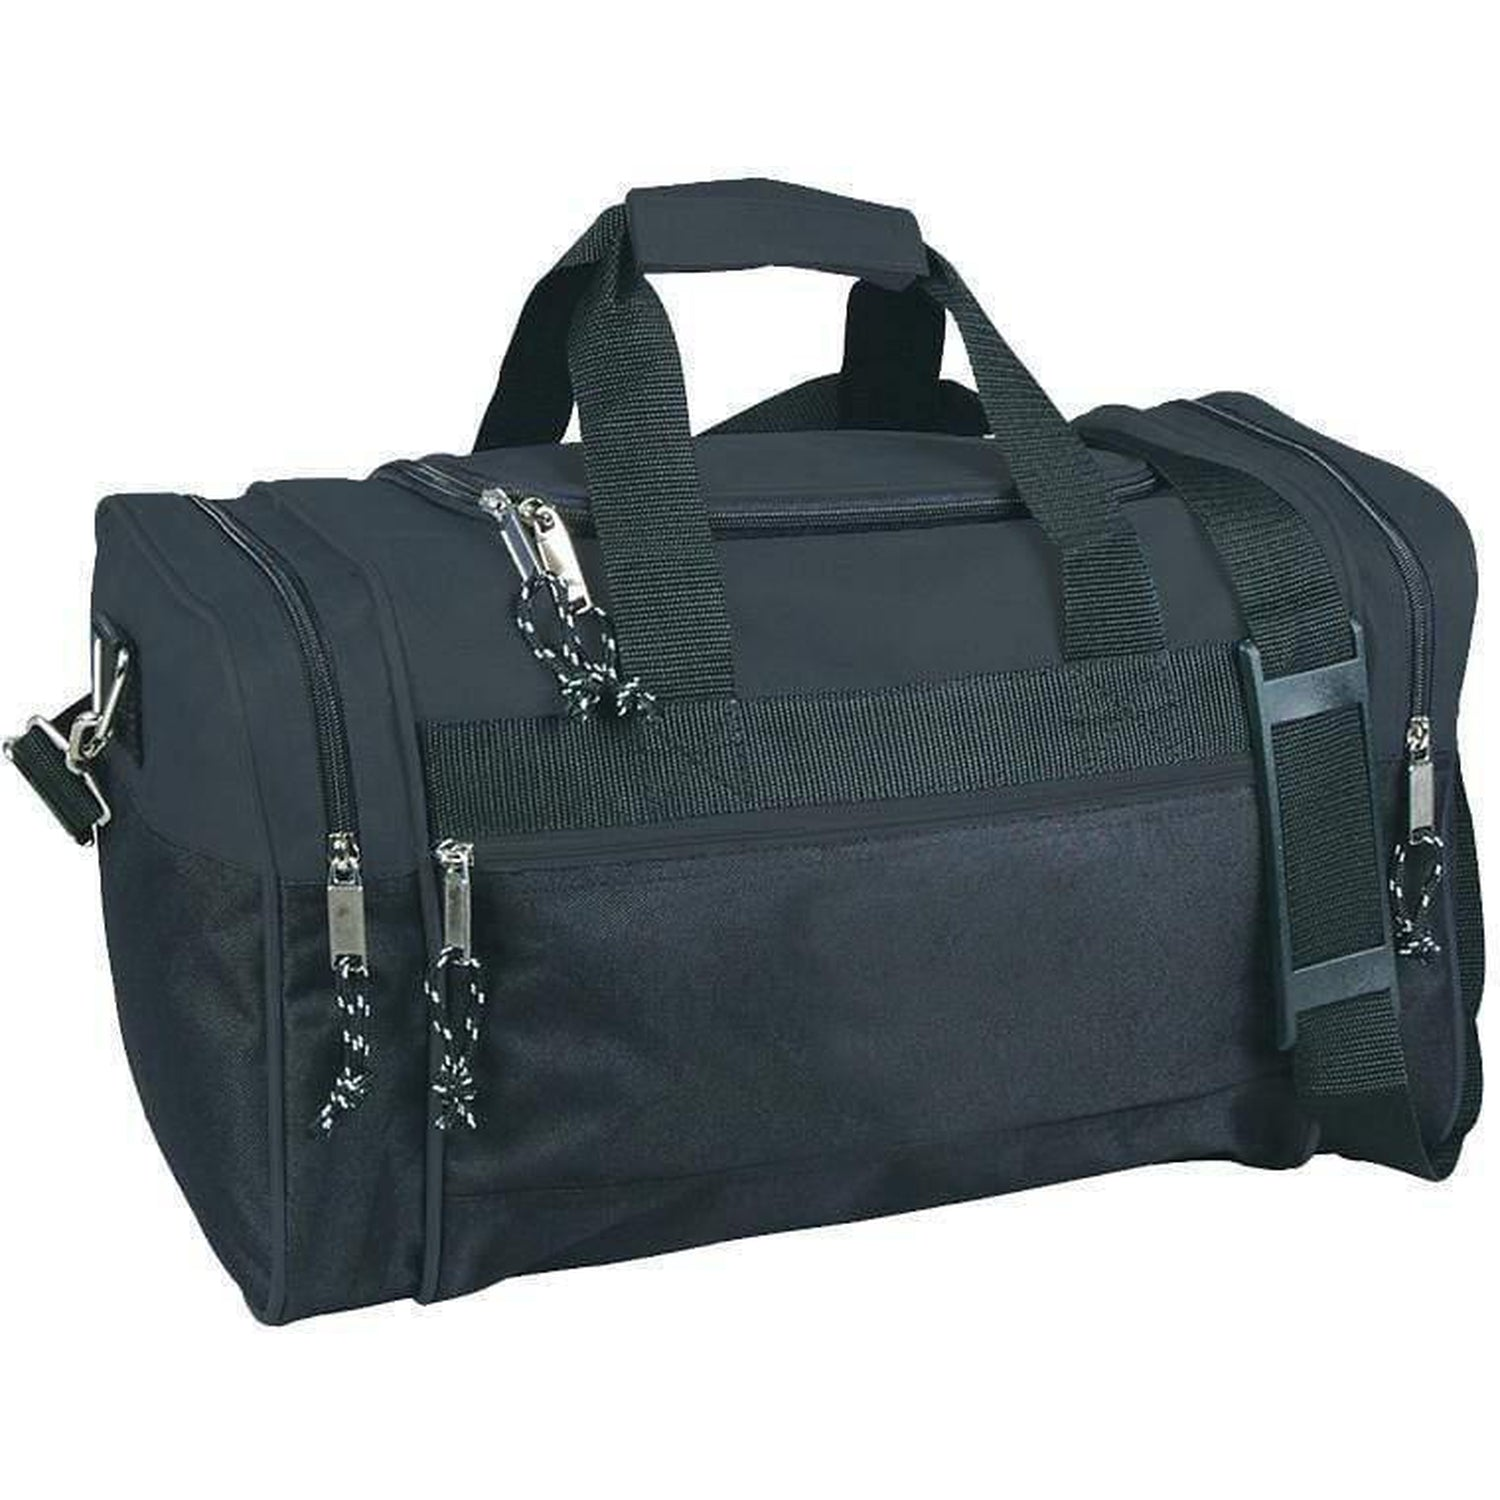 Wholesale DUFFLE BAGs - Zippered Polyester Gym Travel DUFFLE BAGs - DB1171